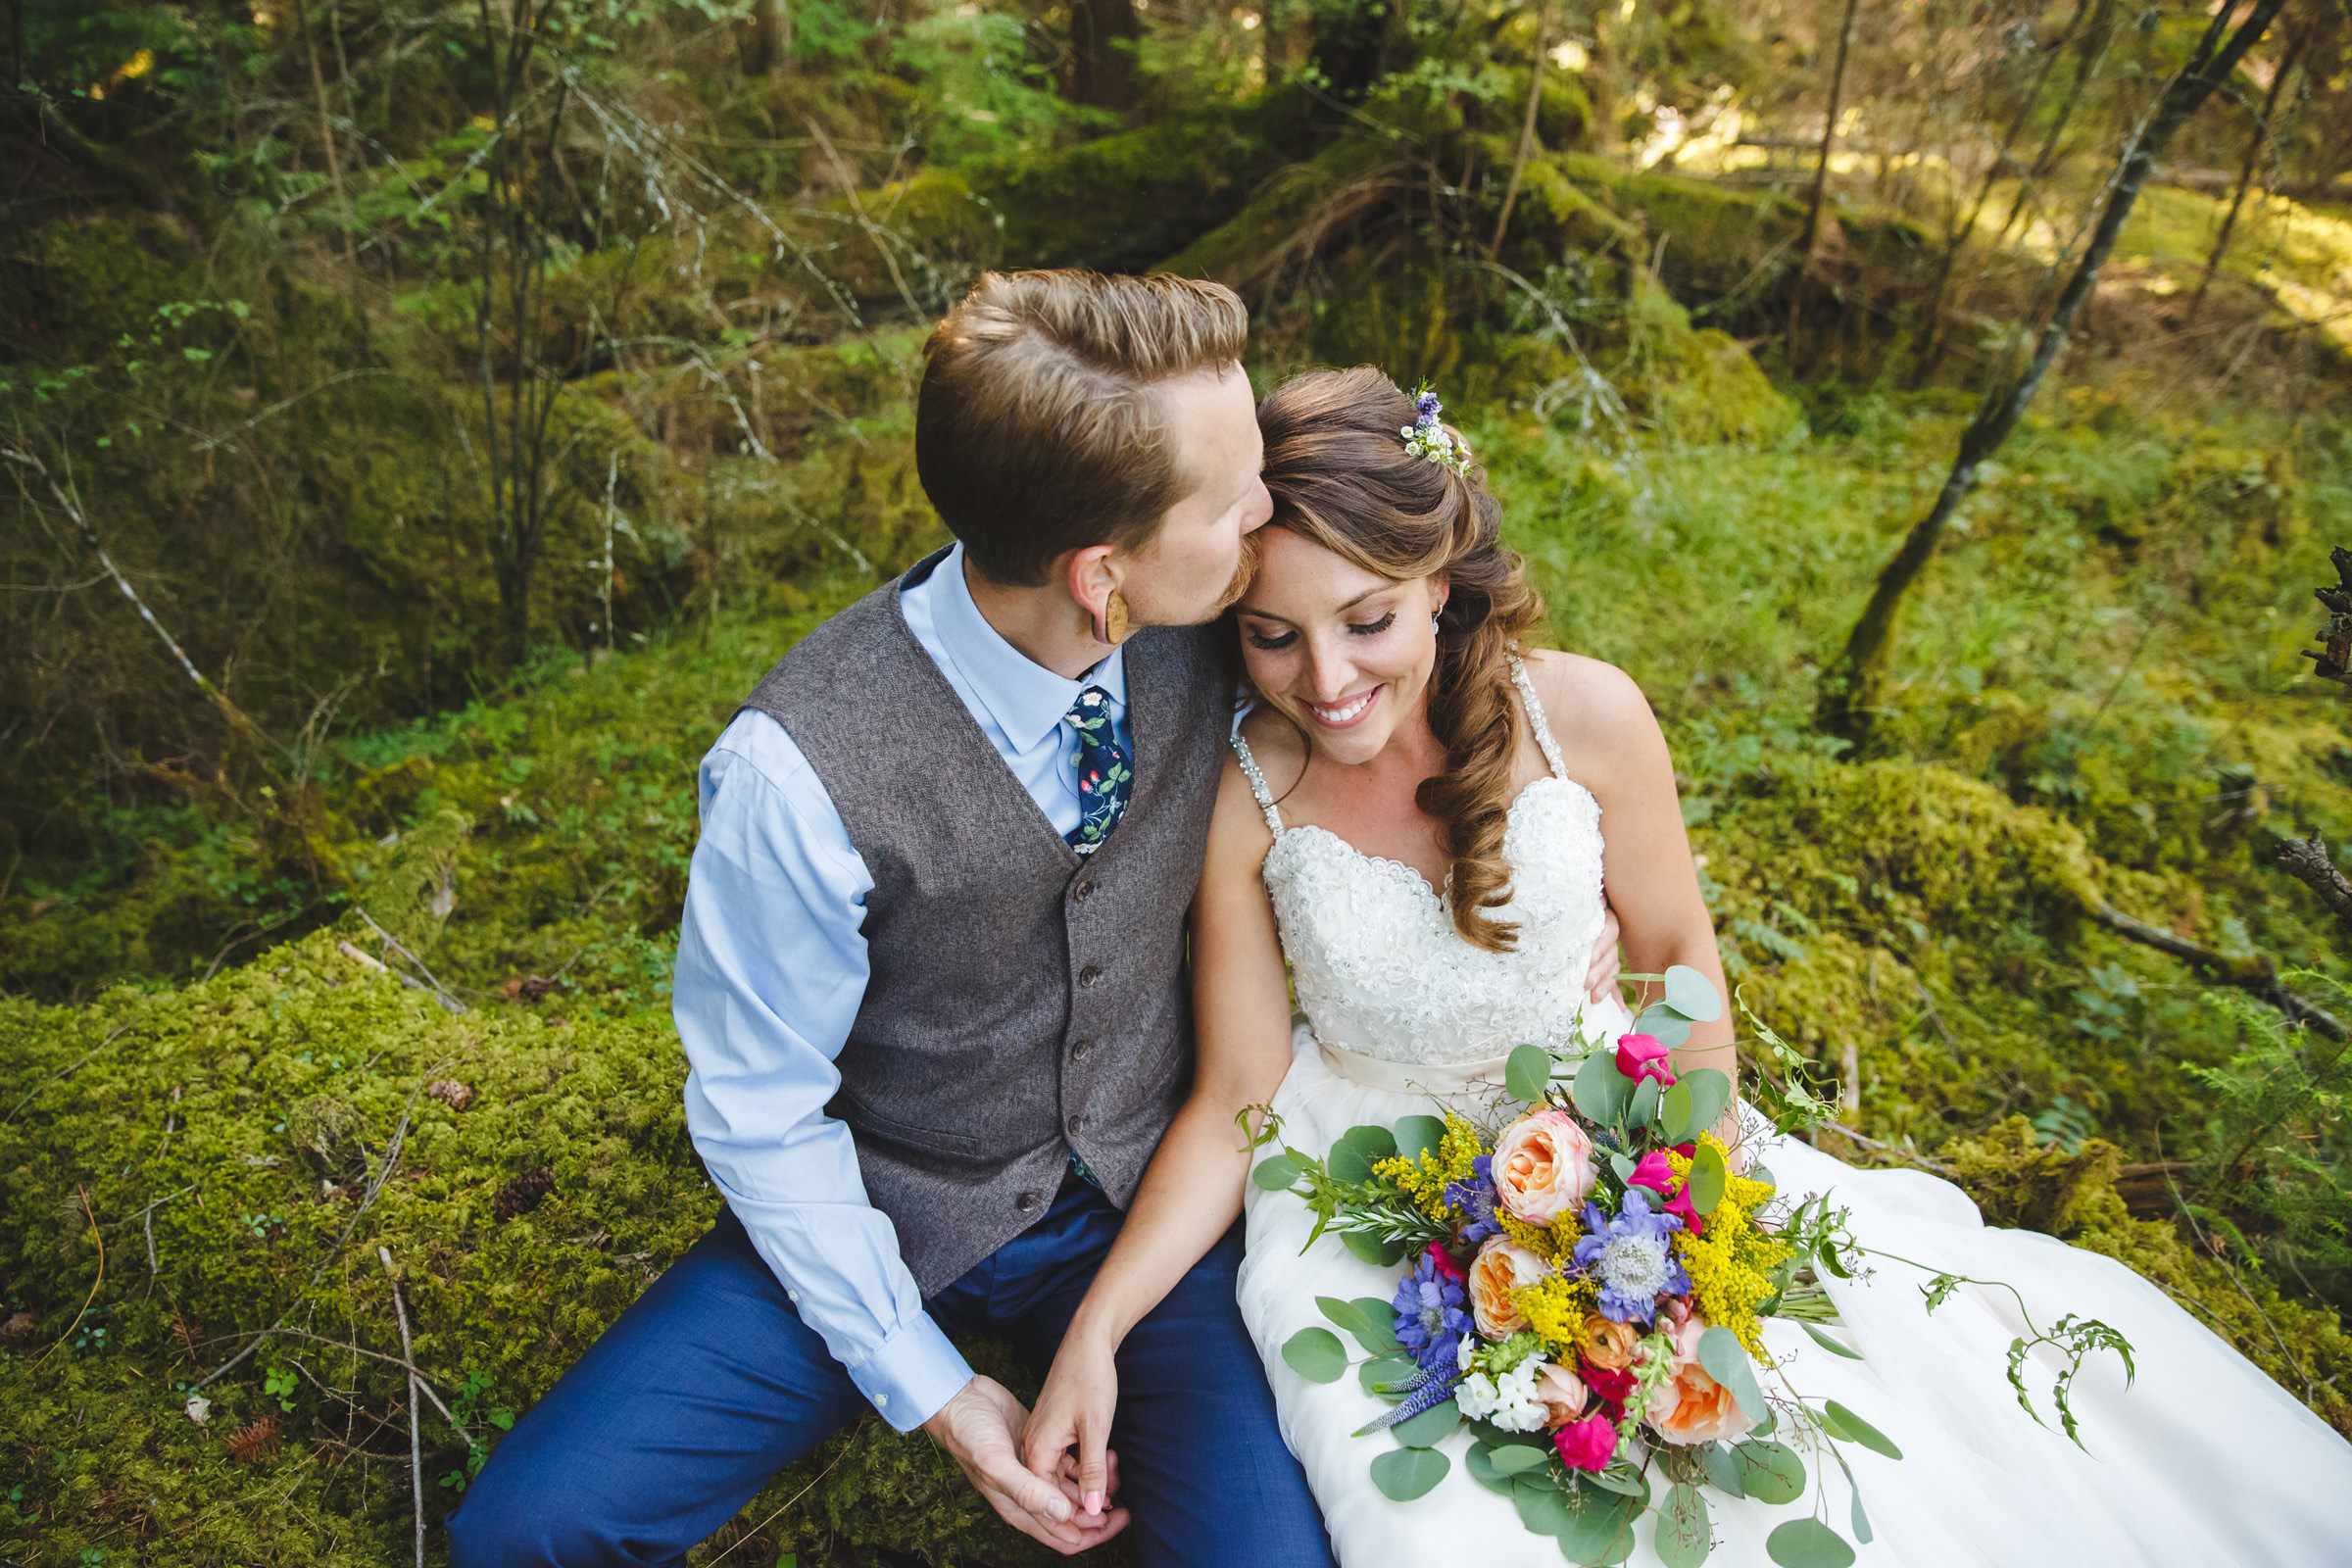 Bride and groom in mossy forest - photo by Satya Curcio Photography